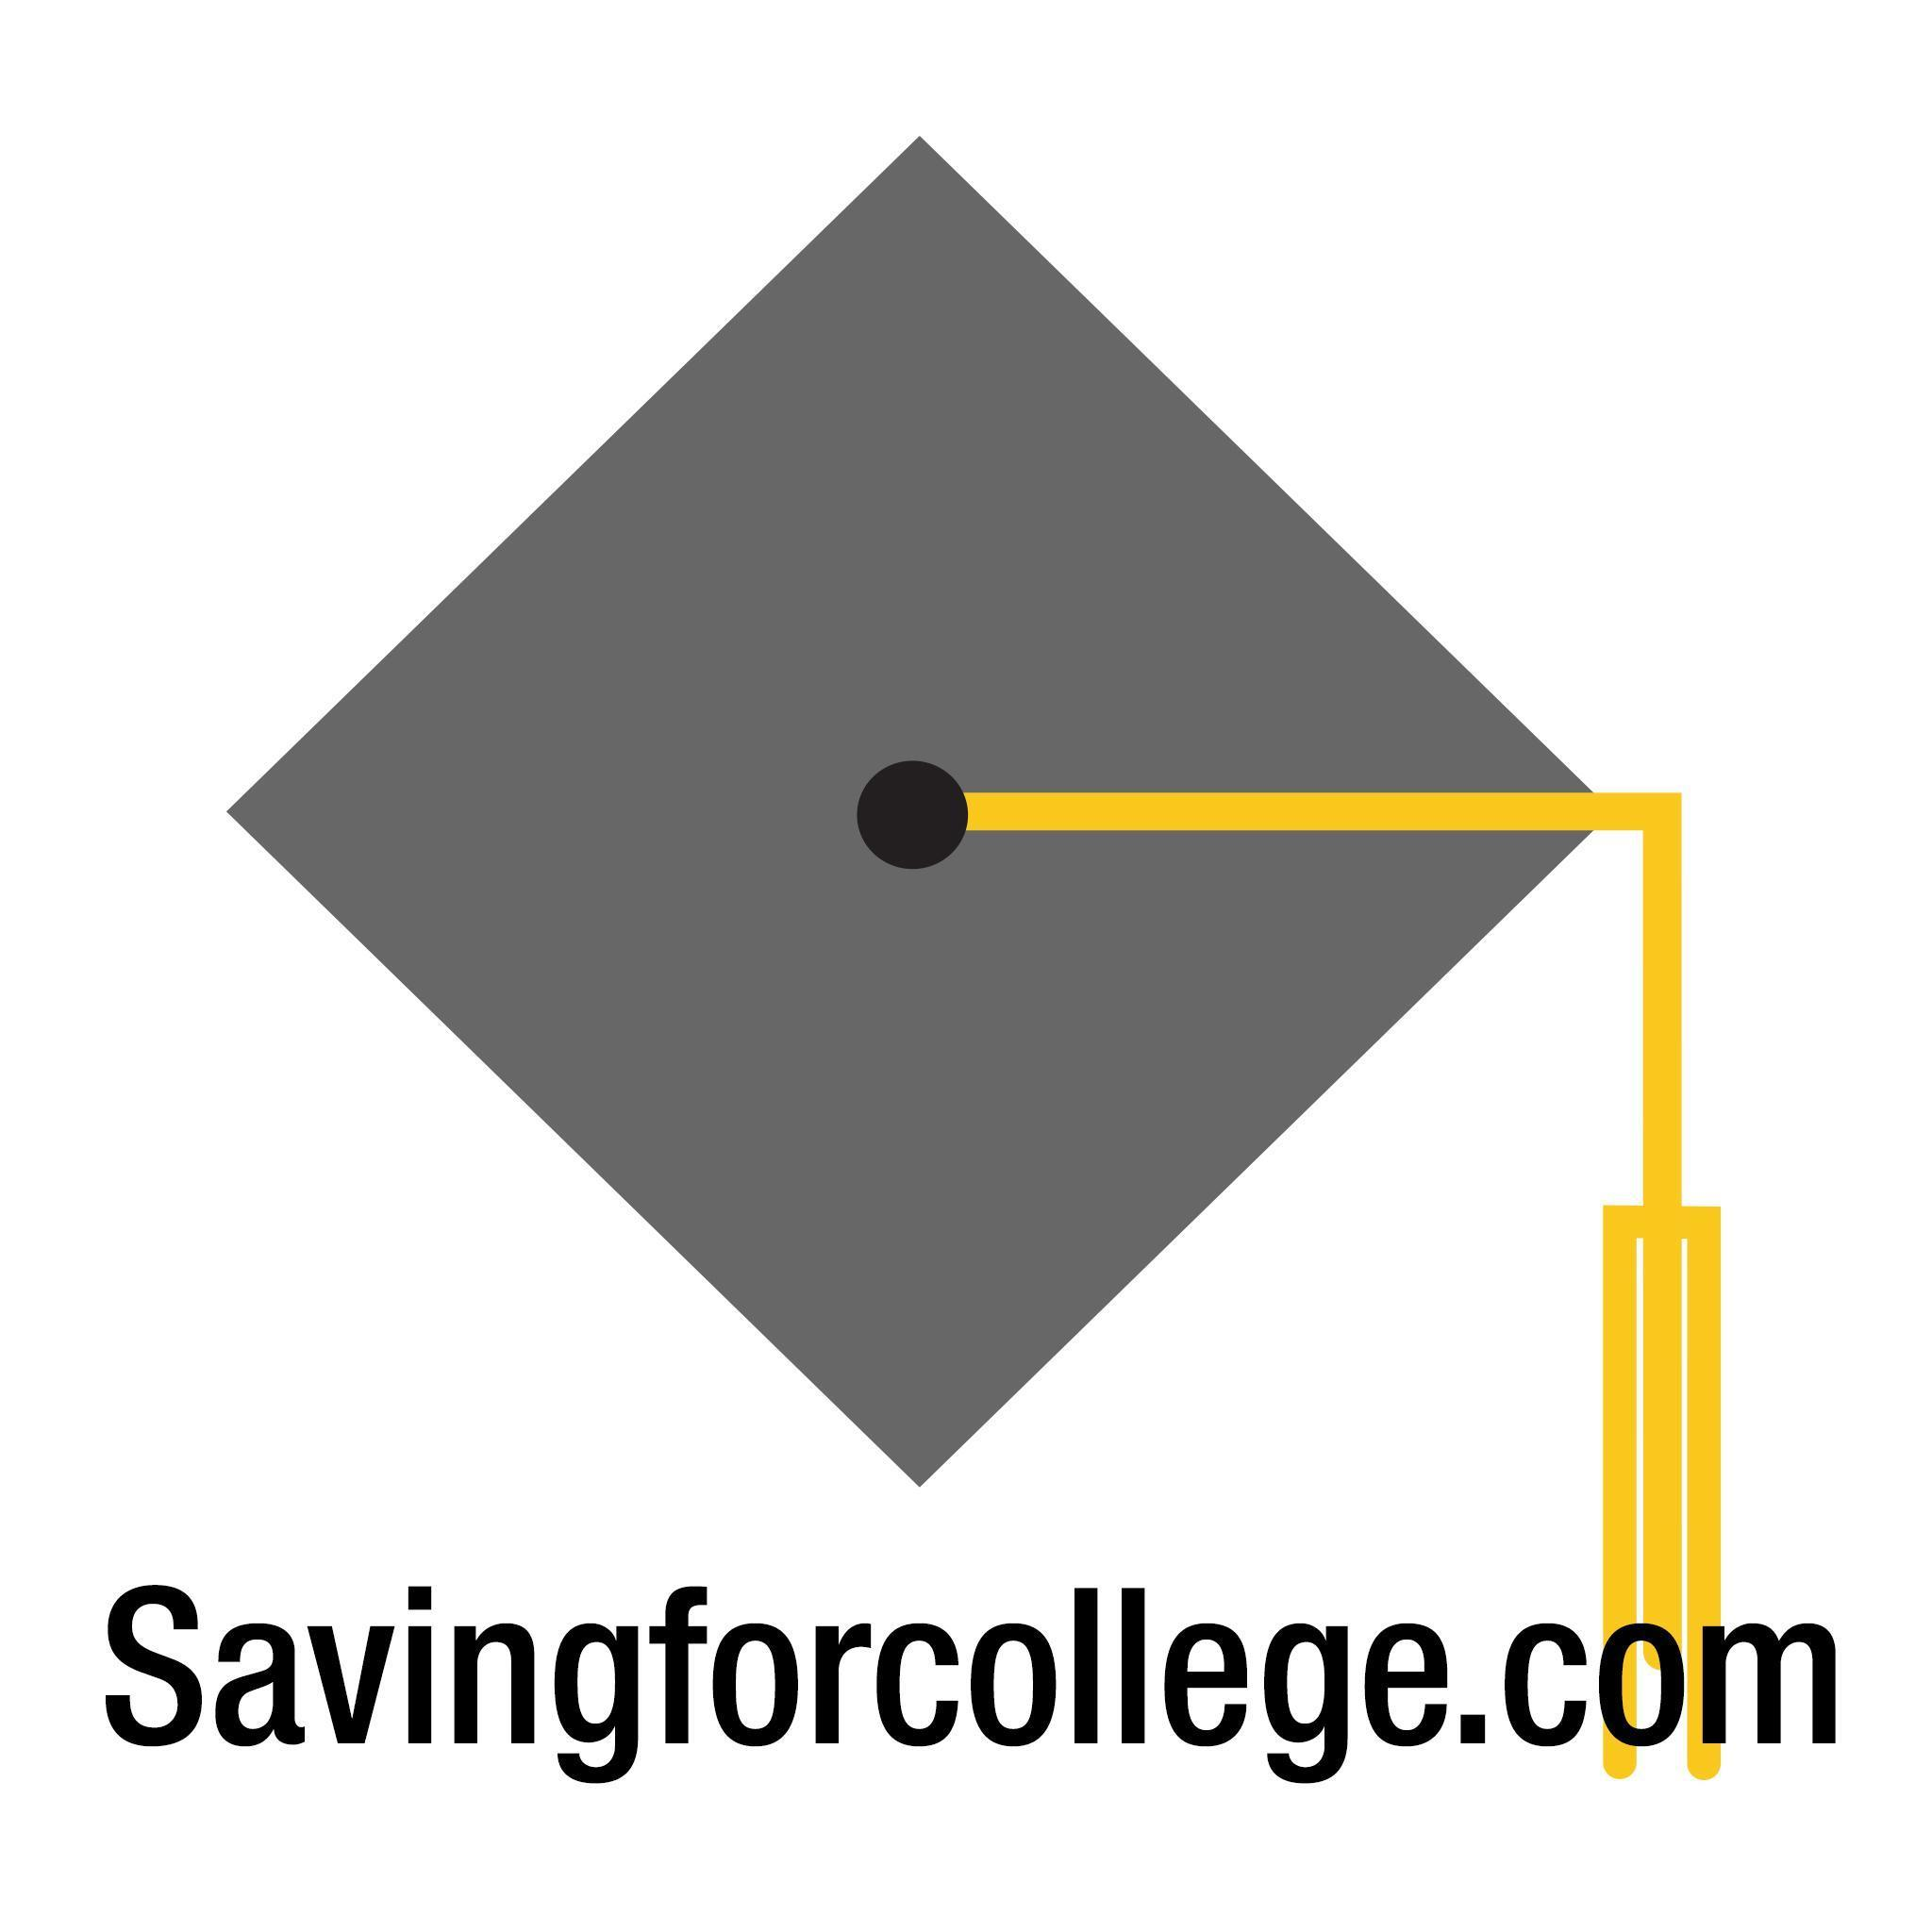 saving4college